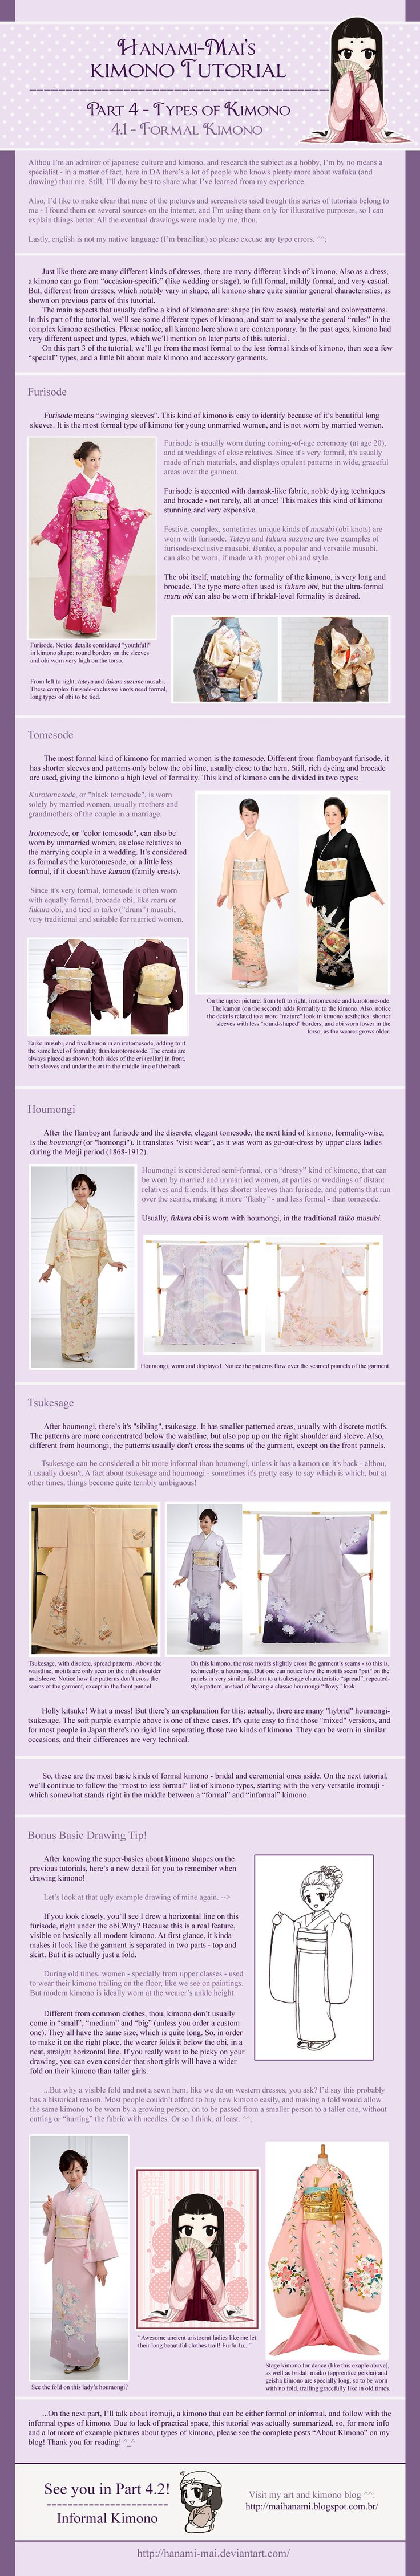 Kimono Tutorial - Part 04 by Hanami-Mai.deviantart.com on @deviantART - Fourth in a series of tutorials/infographics about kimono. This goes into various forms of kimono that are still worn in Japan for formal occasions. For instance, I was fortunate enough to be visiting the Meiji Shrine in Tokyo at the same time as a wedding, and saw guests walking around the grounds in some of these.